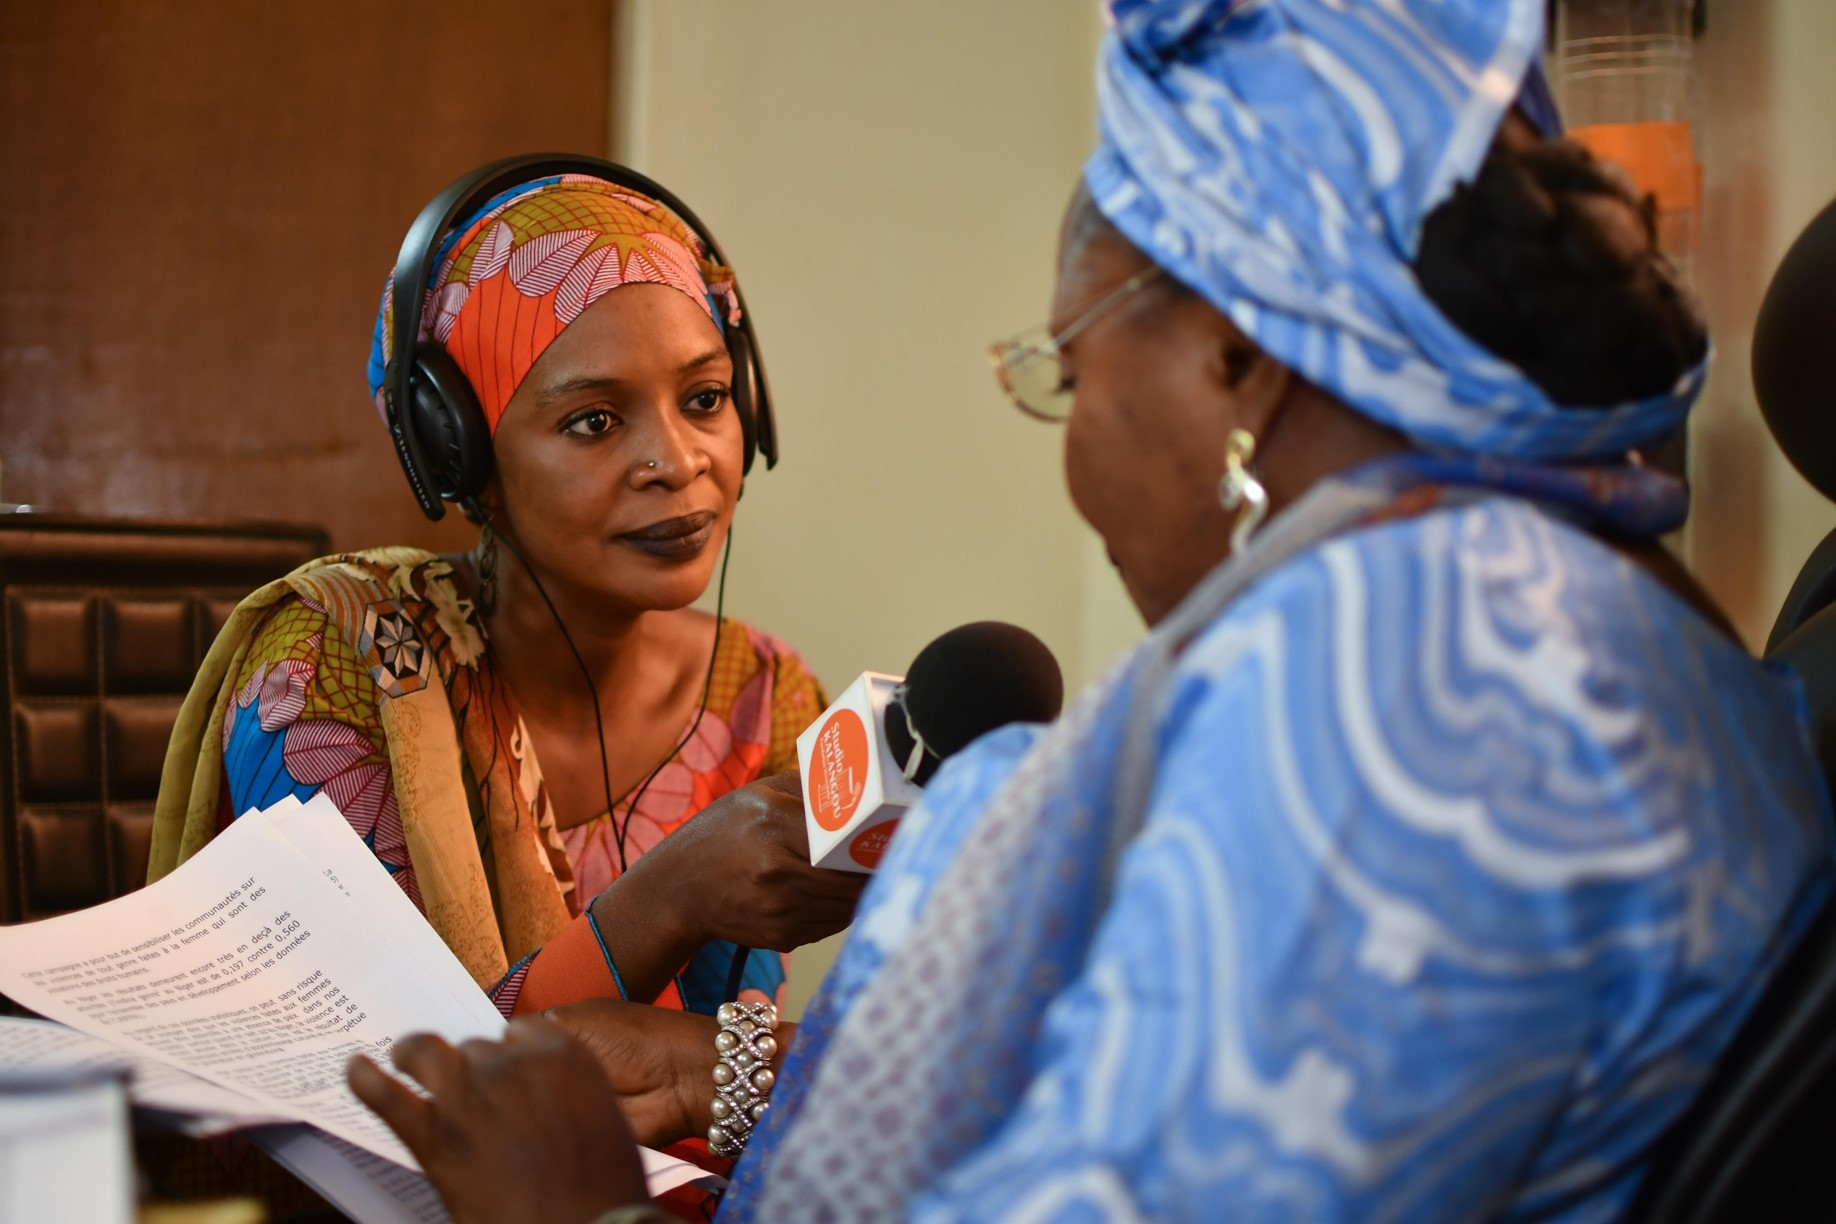 An African woman holds a microphone as she interviews another woman in a radio studio.